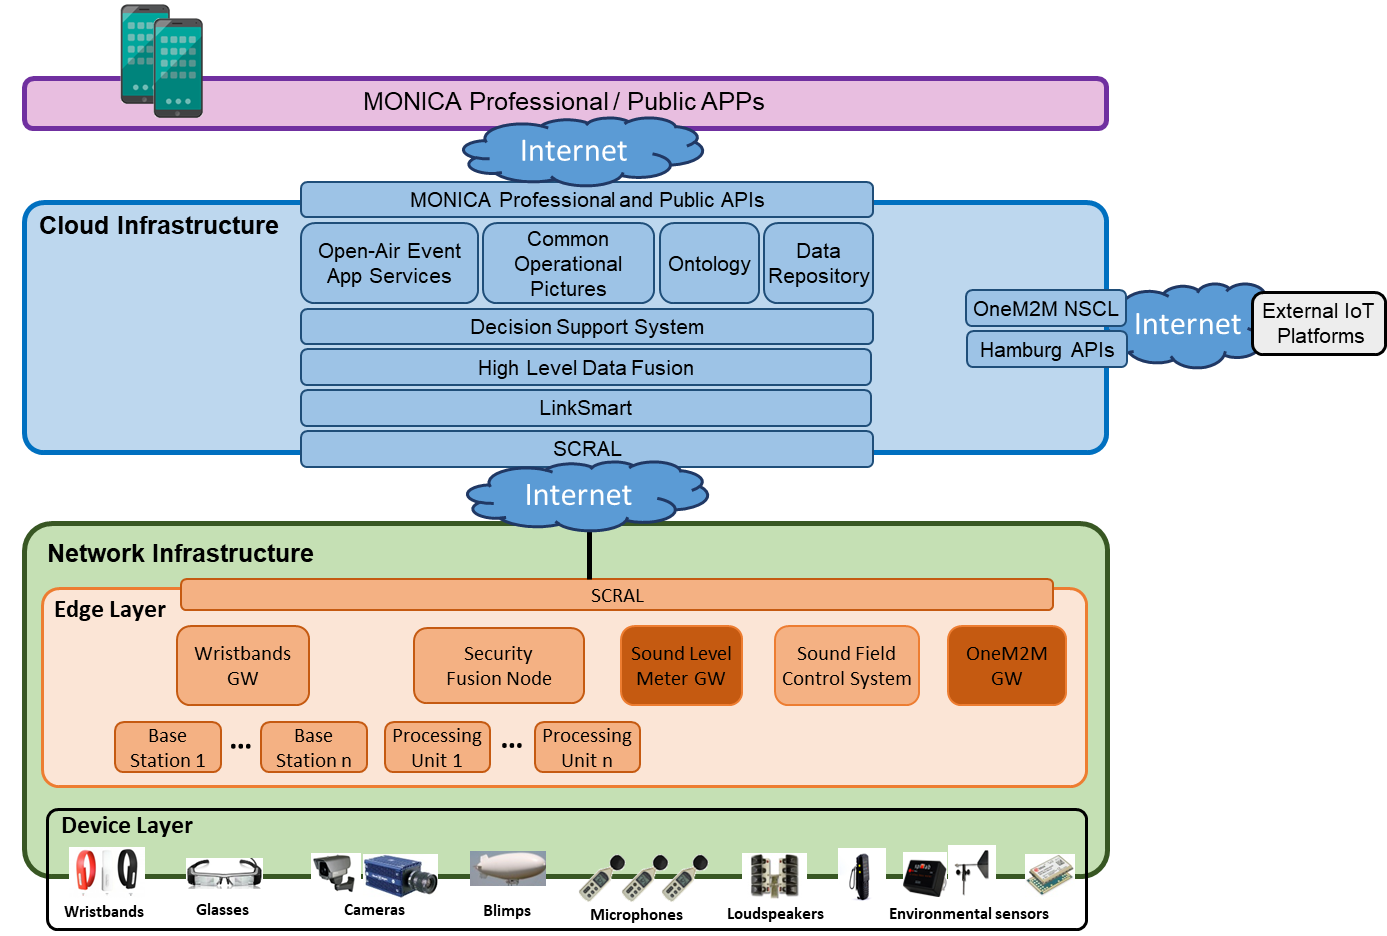 MONICA Architecture Deployment